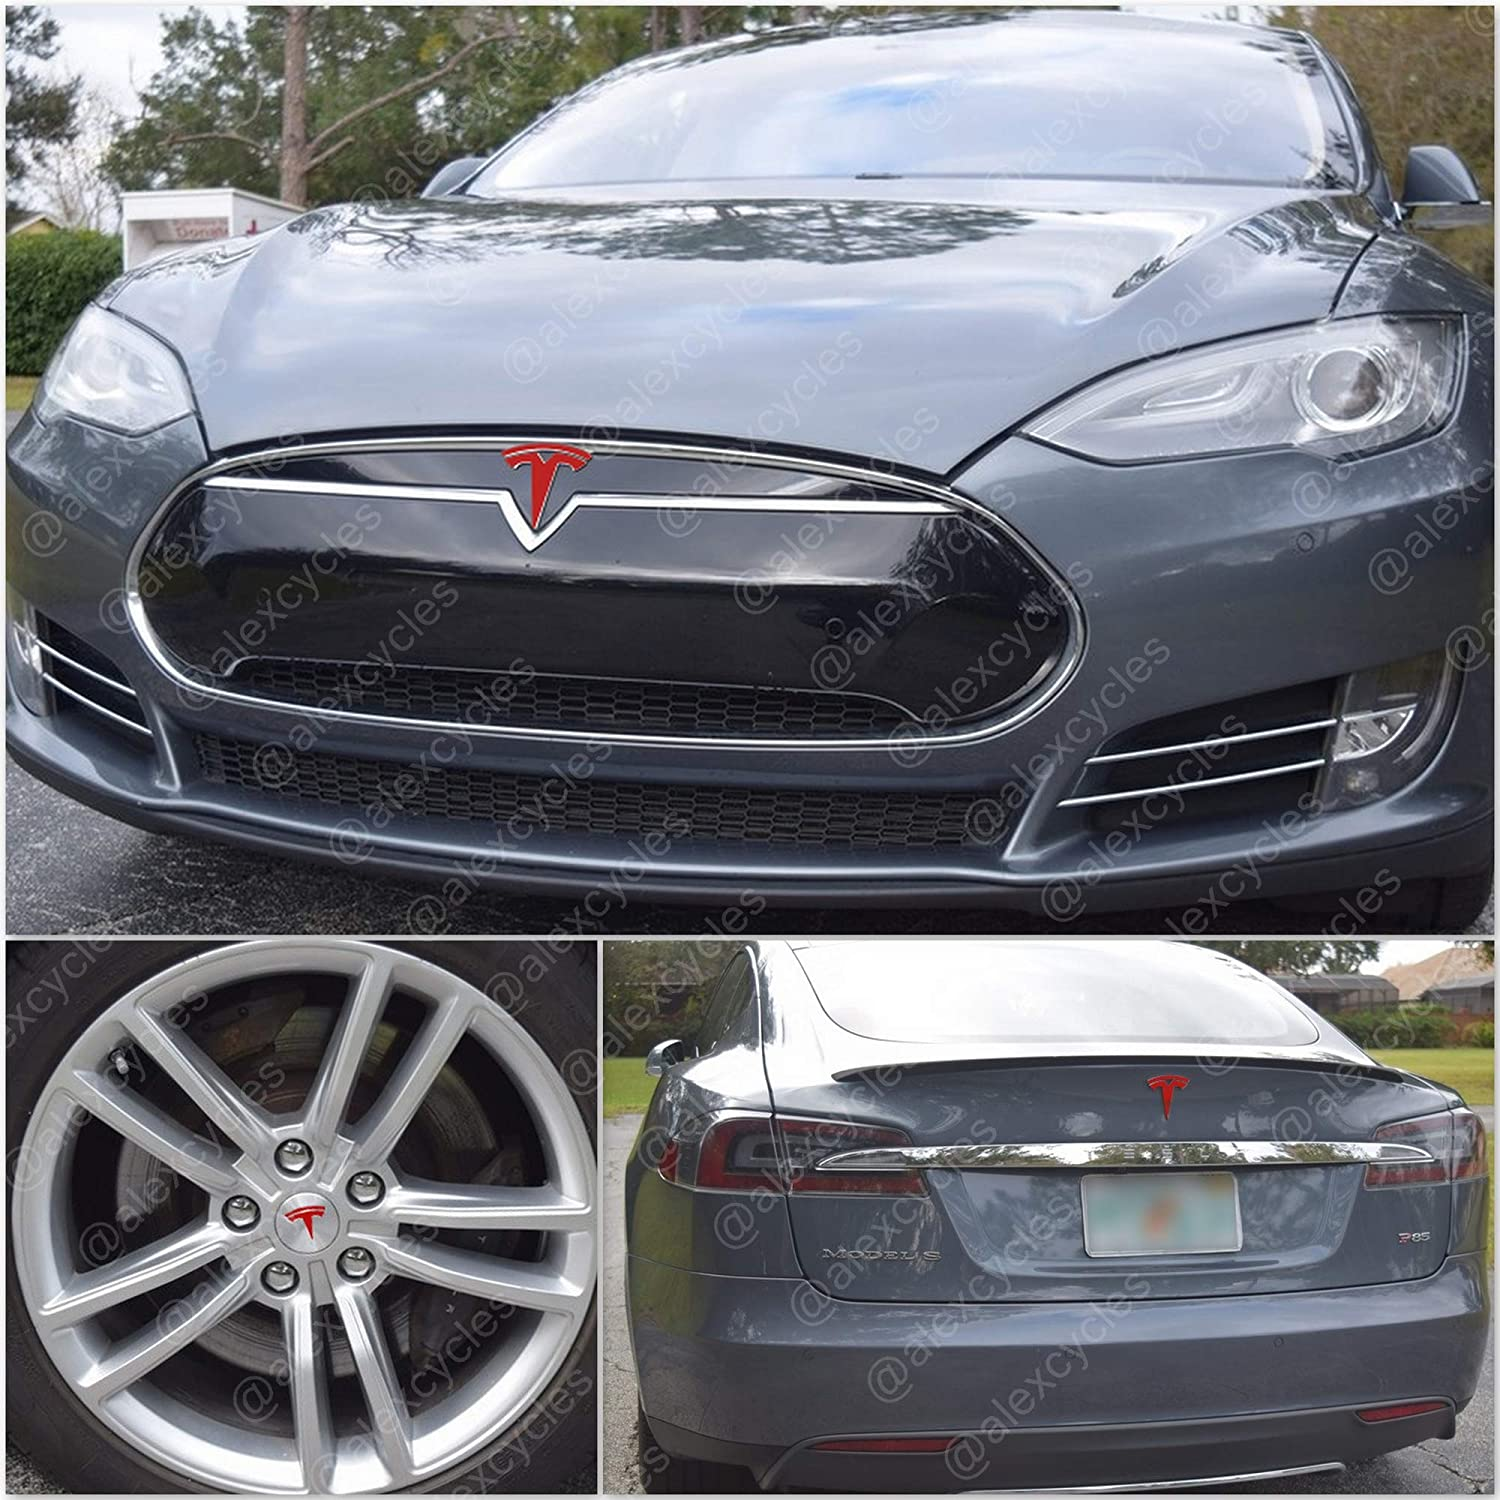 AlexCycles Tesla Model S Old Fascia Front Rear Wrap Wheel Insert Gloss Red Decals Stickers Set